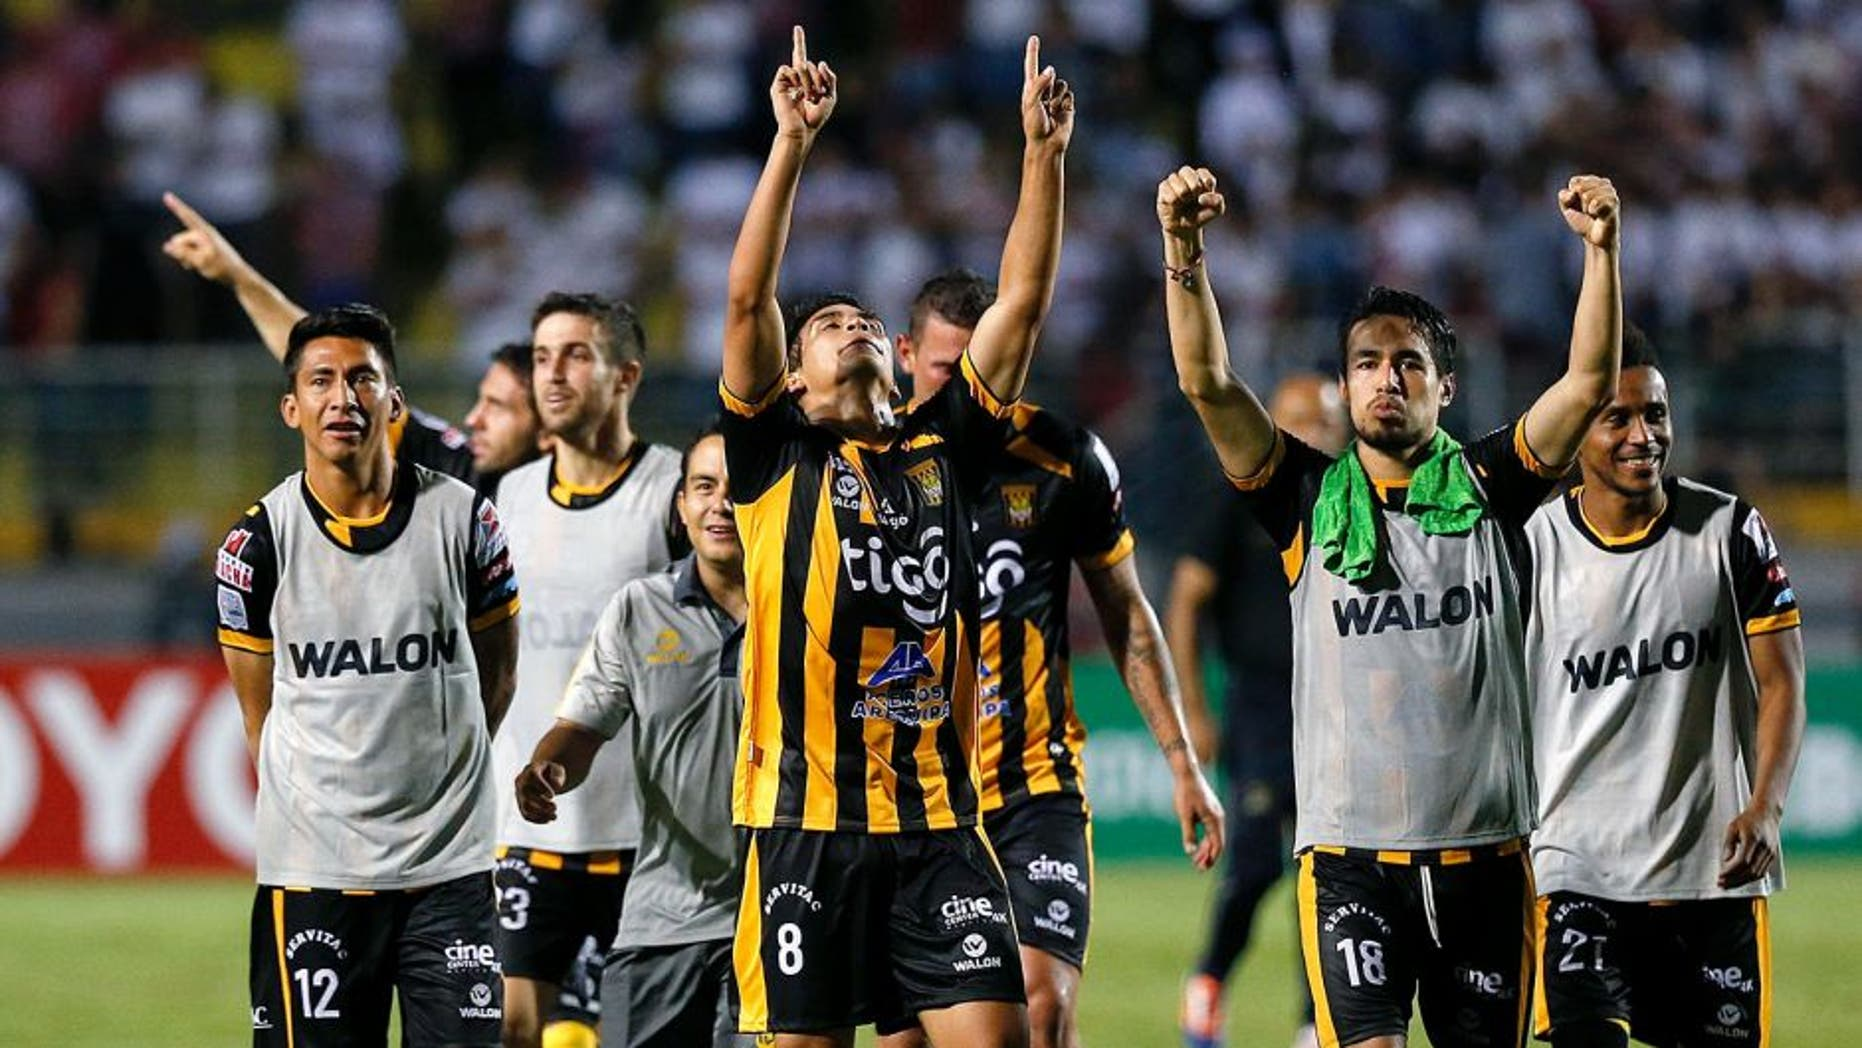 Players of Bolivia's The Strongest celebrate winning their Copa Libertadores soccer match against Brazil's Sao Paulo FC in Sao Paulo, Brazil, Wednesday, Feb. 17, 2016. (AP Photo/Andre Penner)